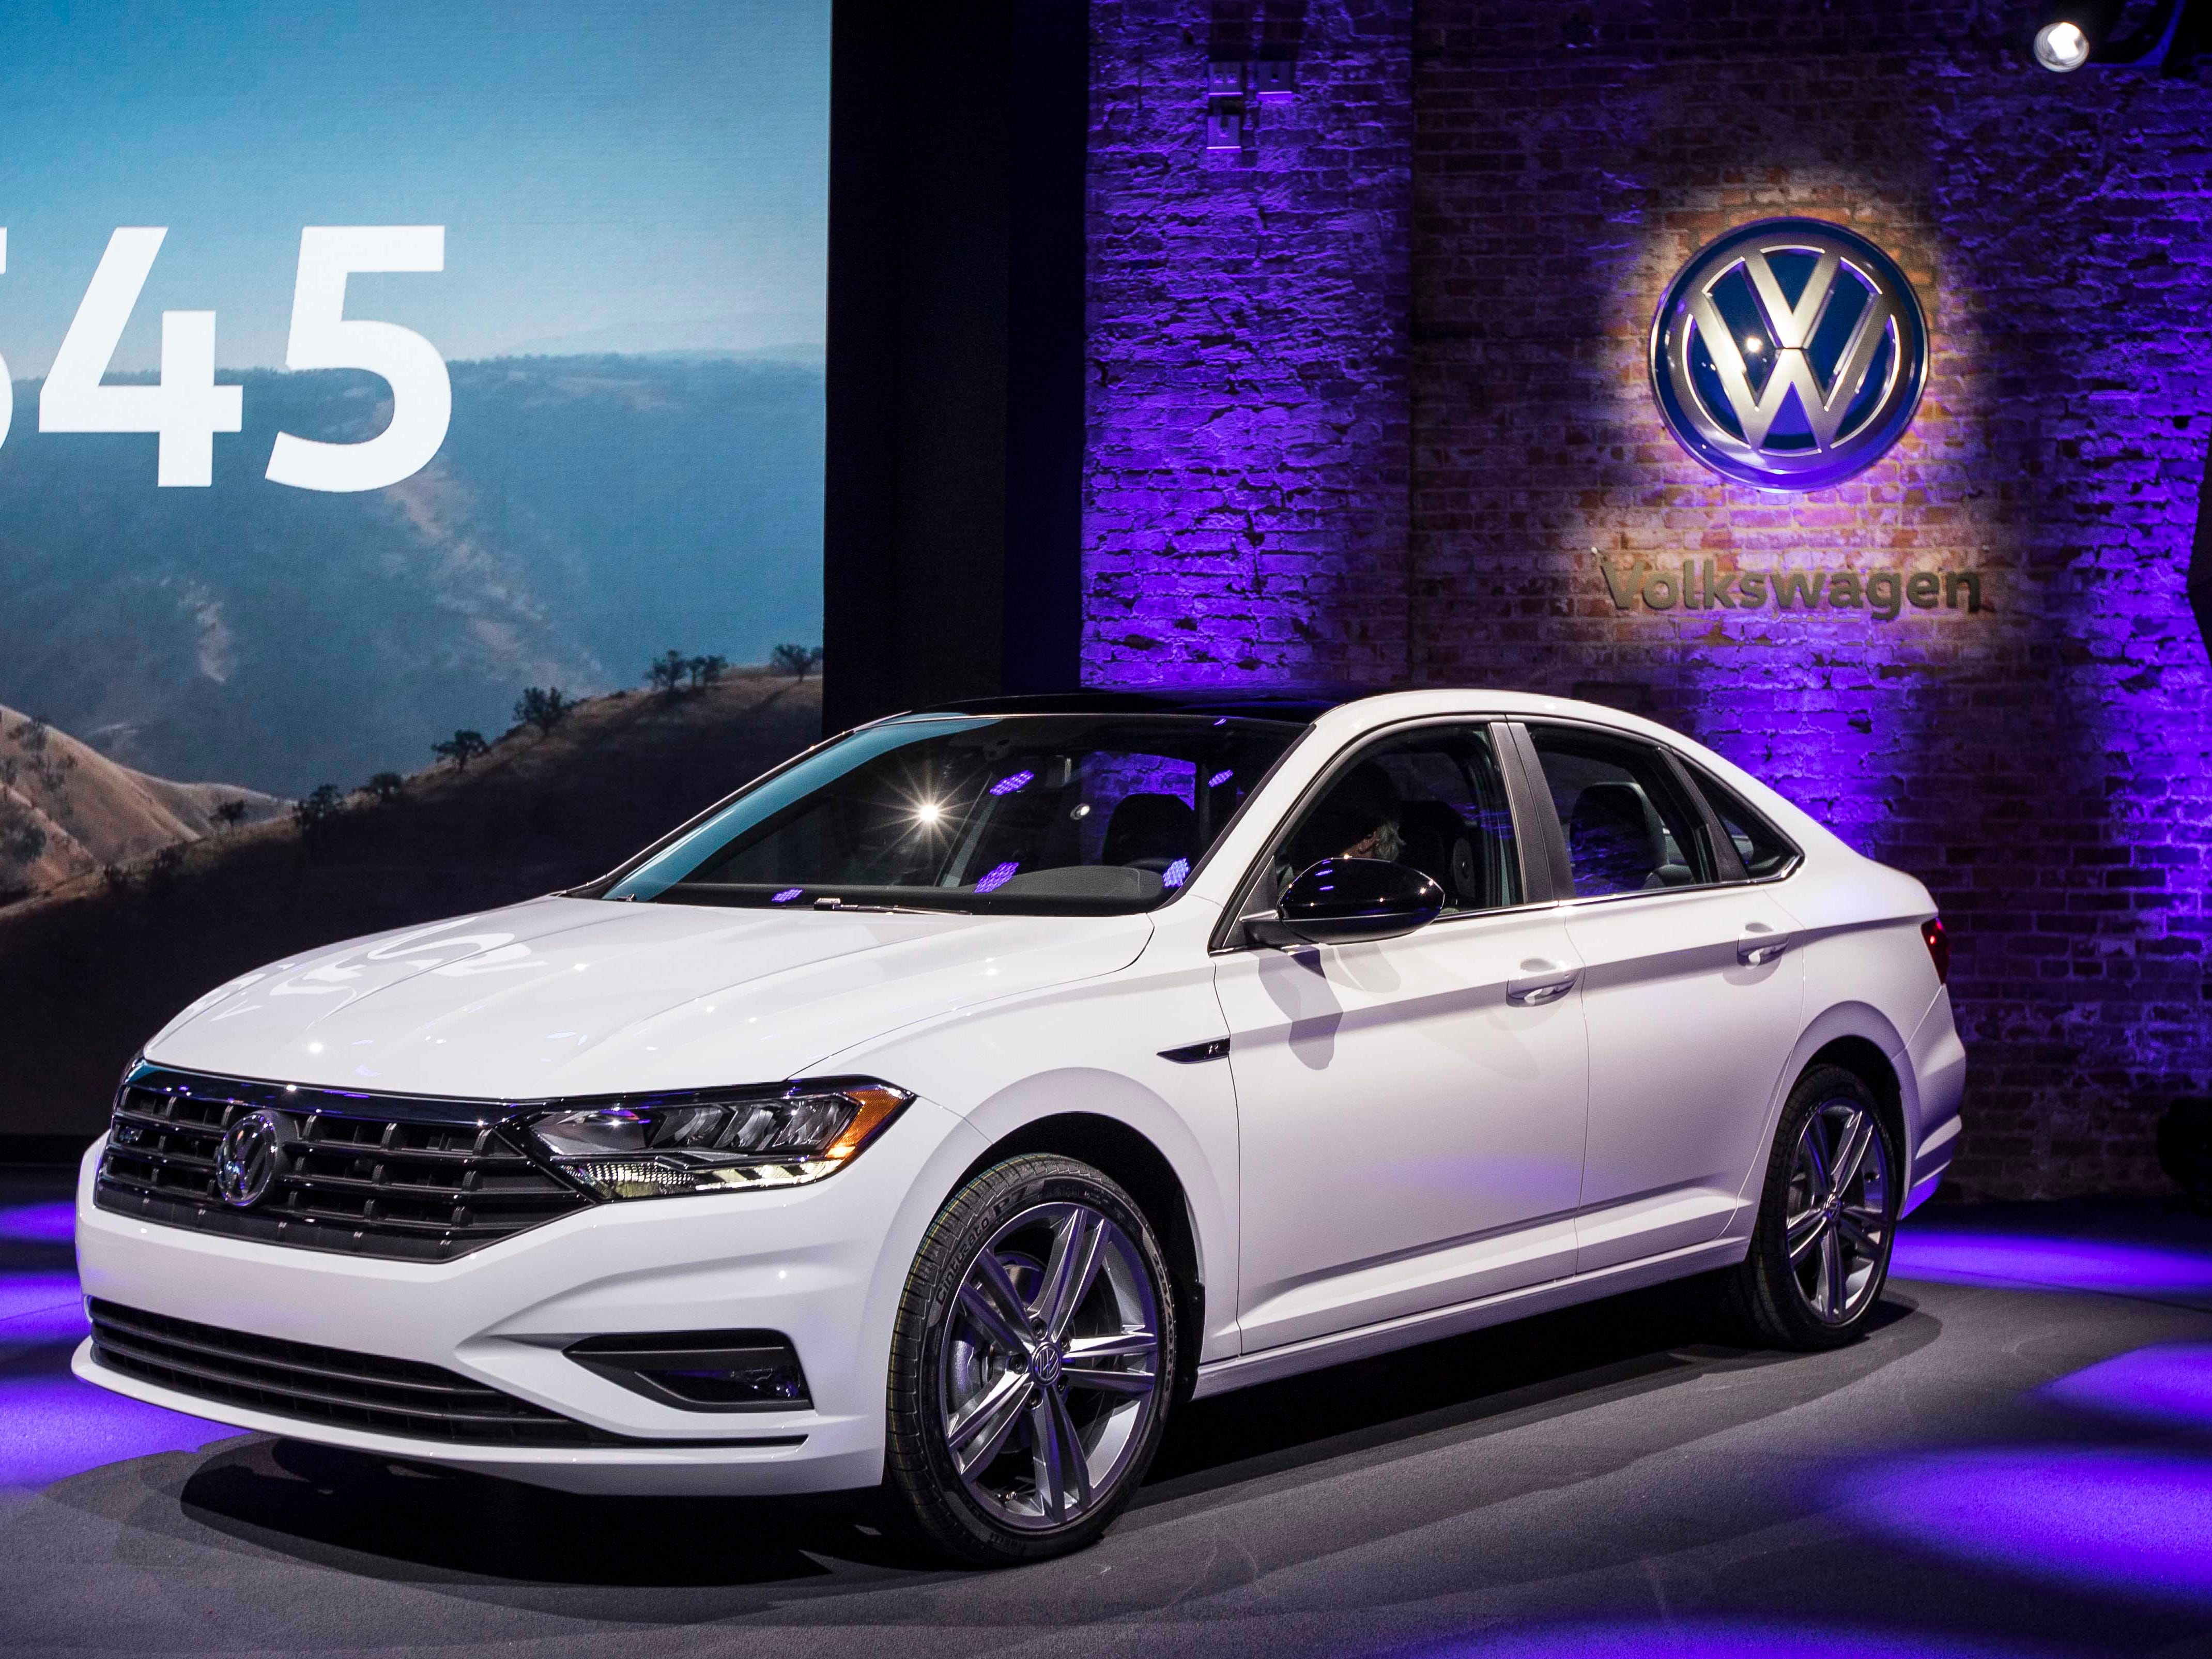 Volkswagen ranked 41st with a brand value of $12 billion, up 6 percent.